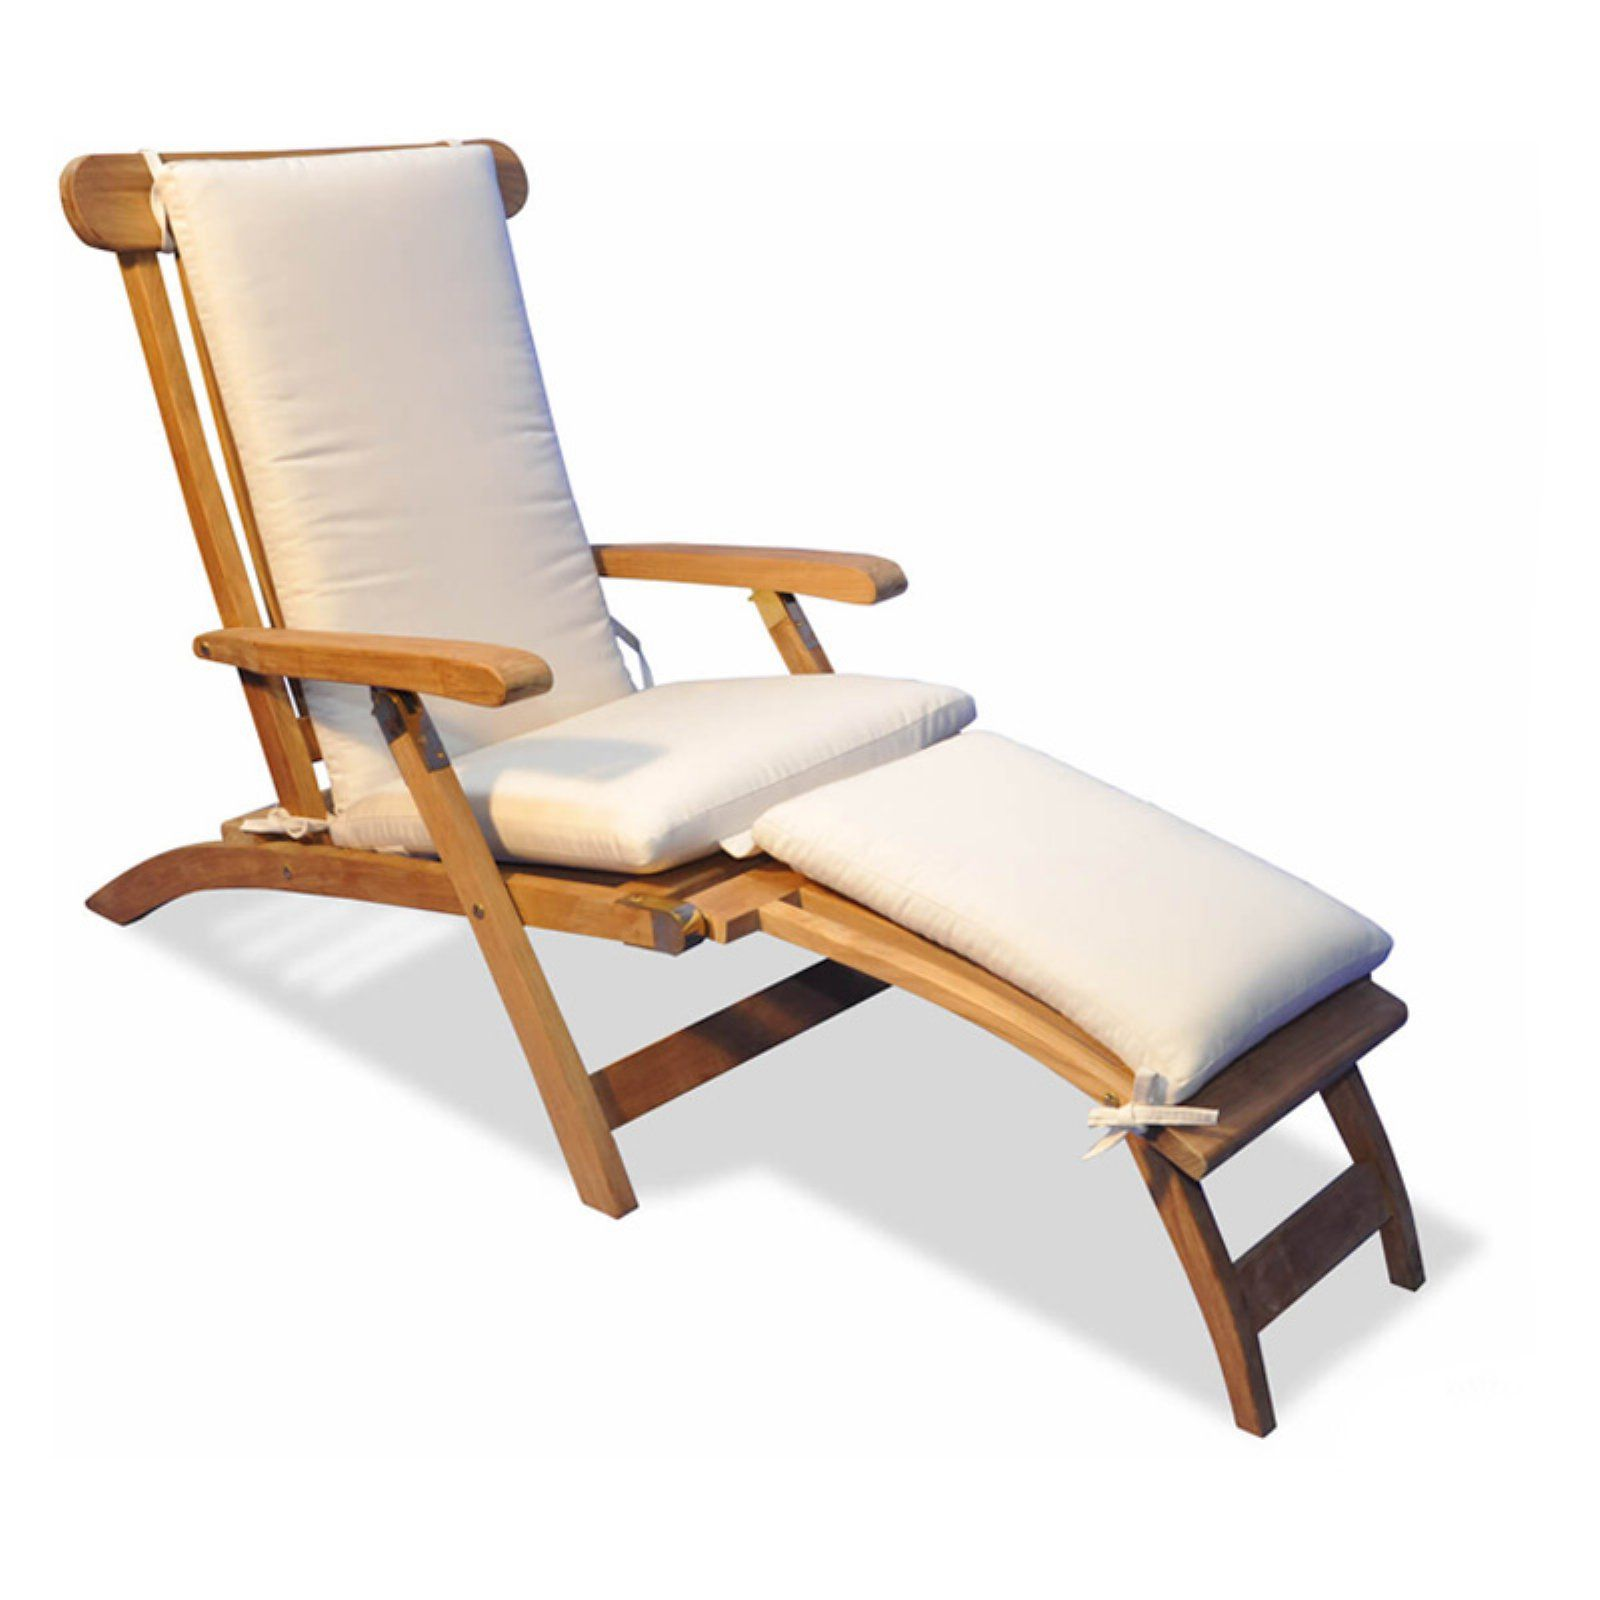 Outdoor Regal Teak Teak Steamer Chaise Lounge Without Cushion In 2019 Products Outdoor Chairs Teak Chair